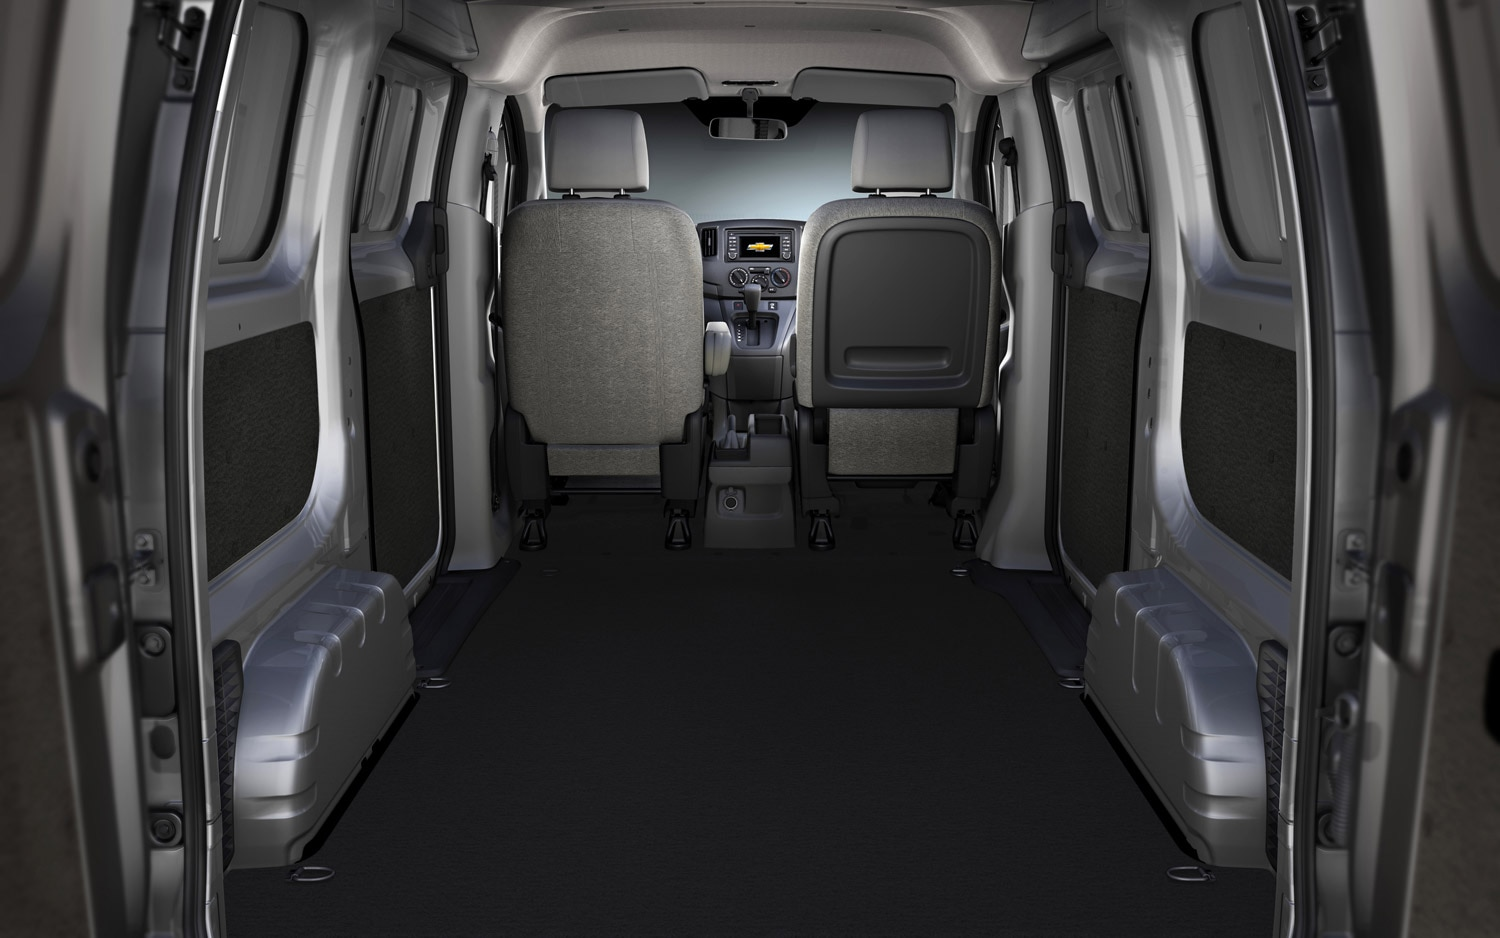 Chevrolet To Sell Small Cargo Van Based On Nissan Nv200 Photo Gallery